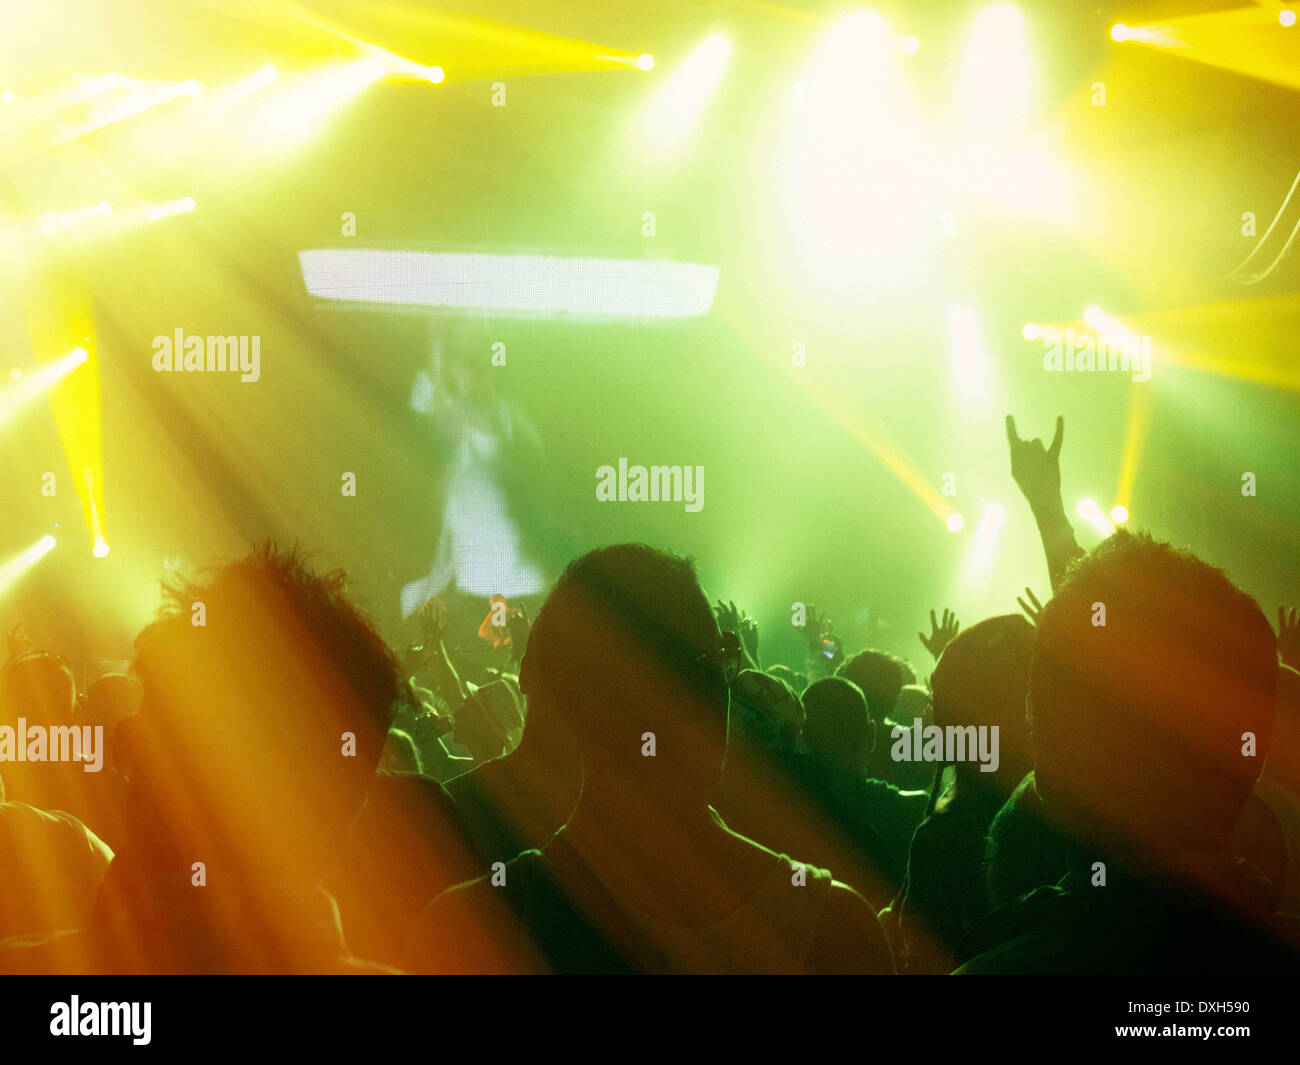 Silhouetted fans facing illuminated stage - Stock Image